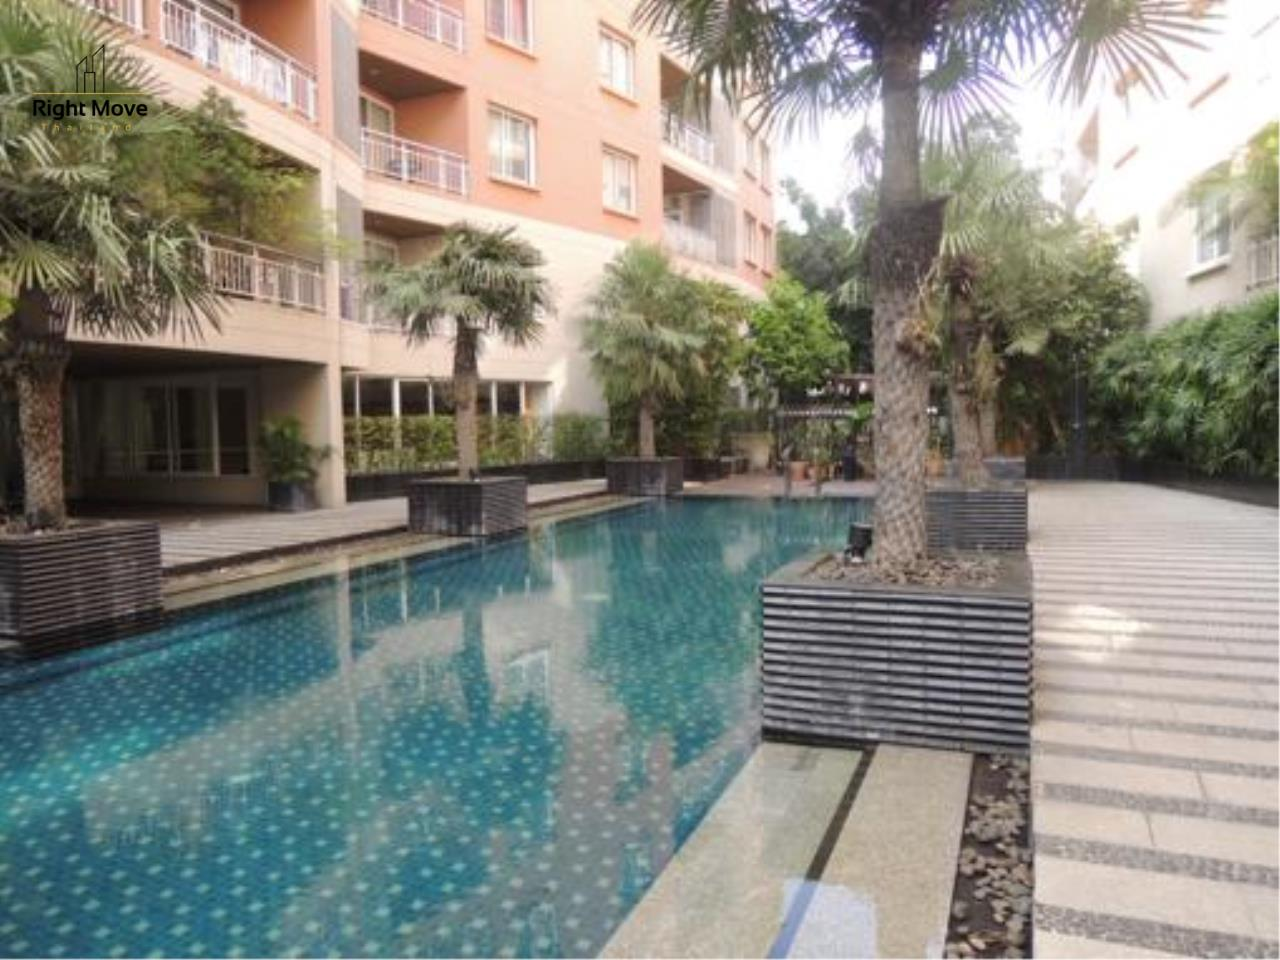 Right Move Thailand Agency's CS1818 The Rise Penthouse For Sale 27,500,000 THB 4 Bedrooms 297.47 Sqm 10